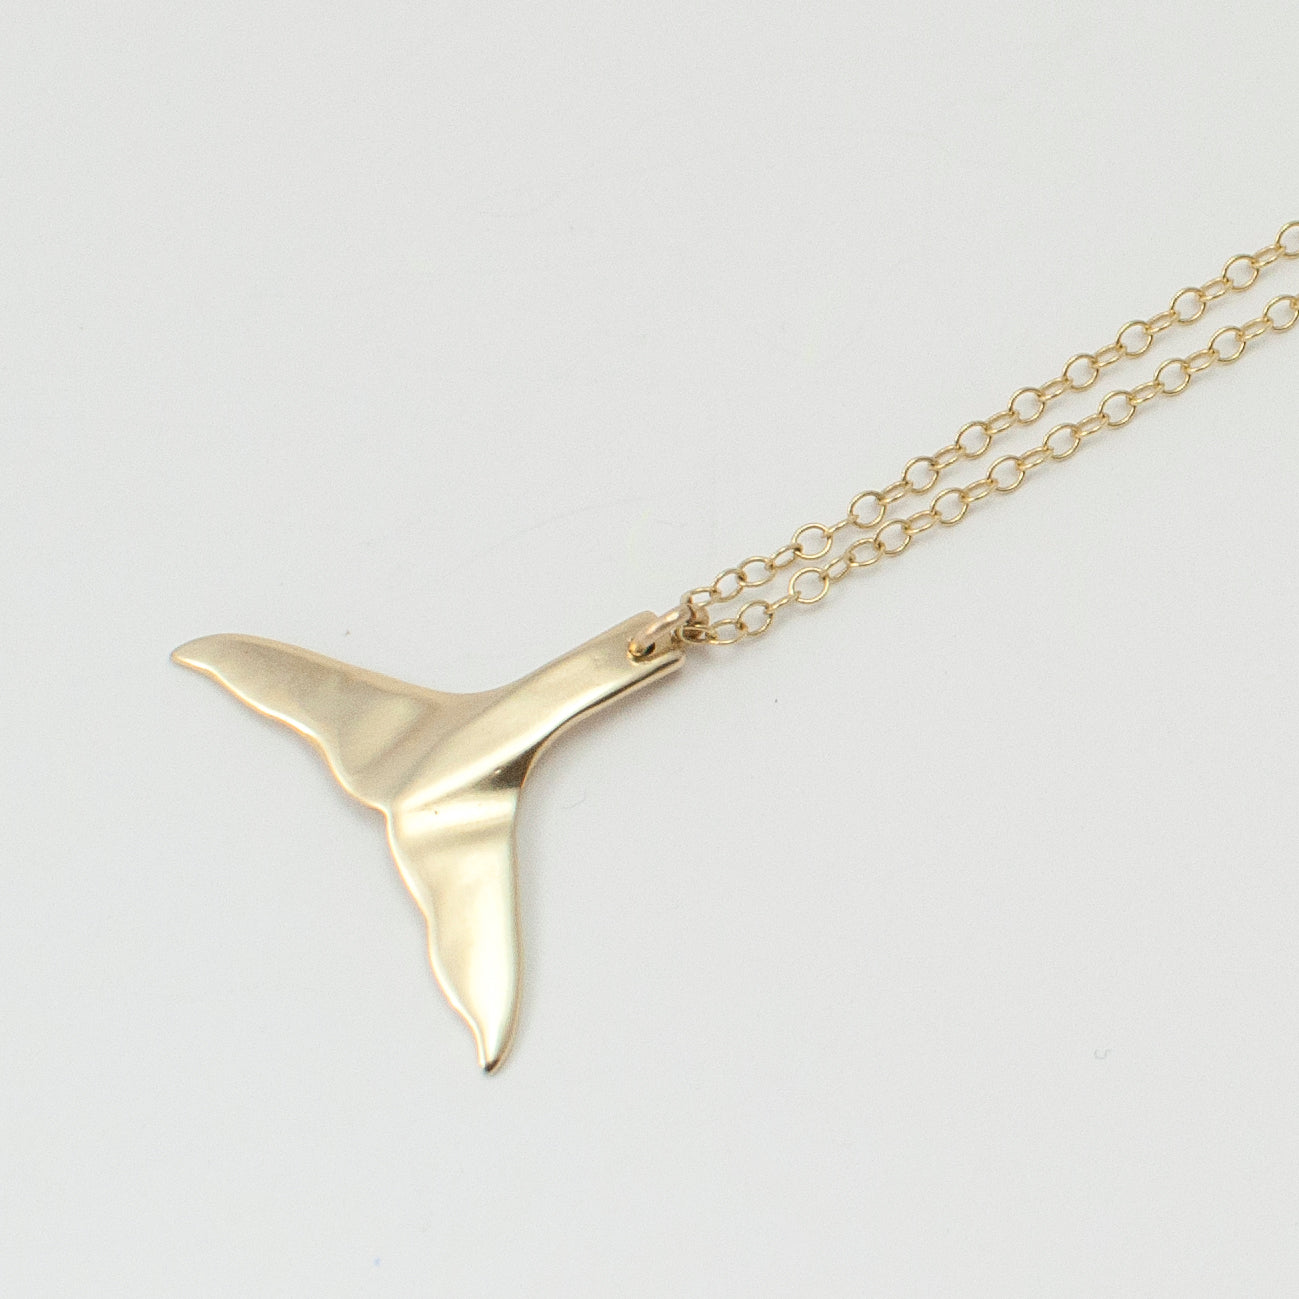 WHALES TAIL Necklace